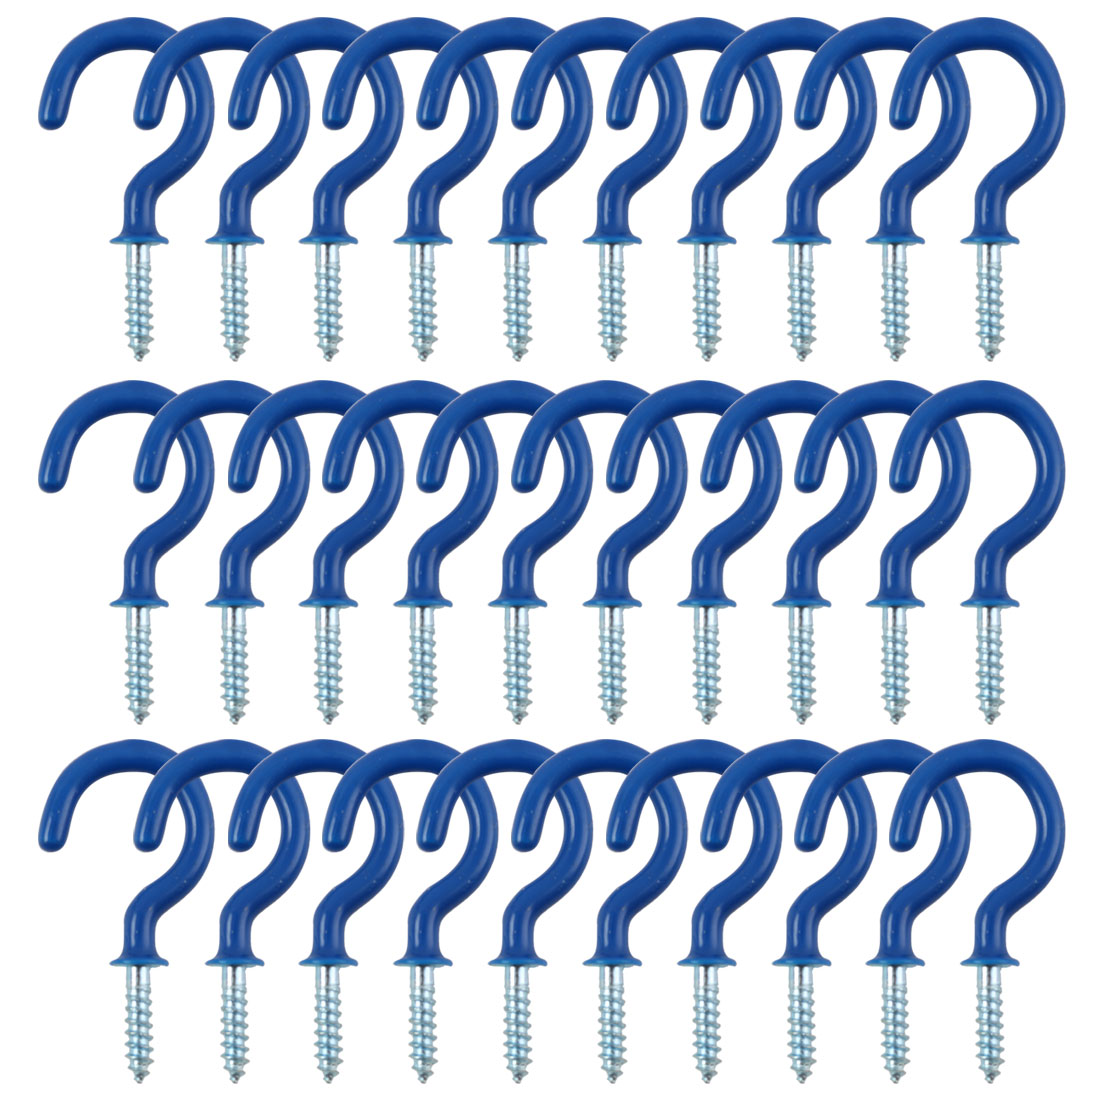 30pcs Cup Ceiling Hooks 1 Inch Metal with Vinyl Coated Screw in Holder Blue